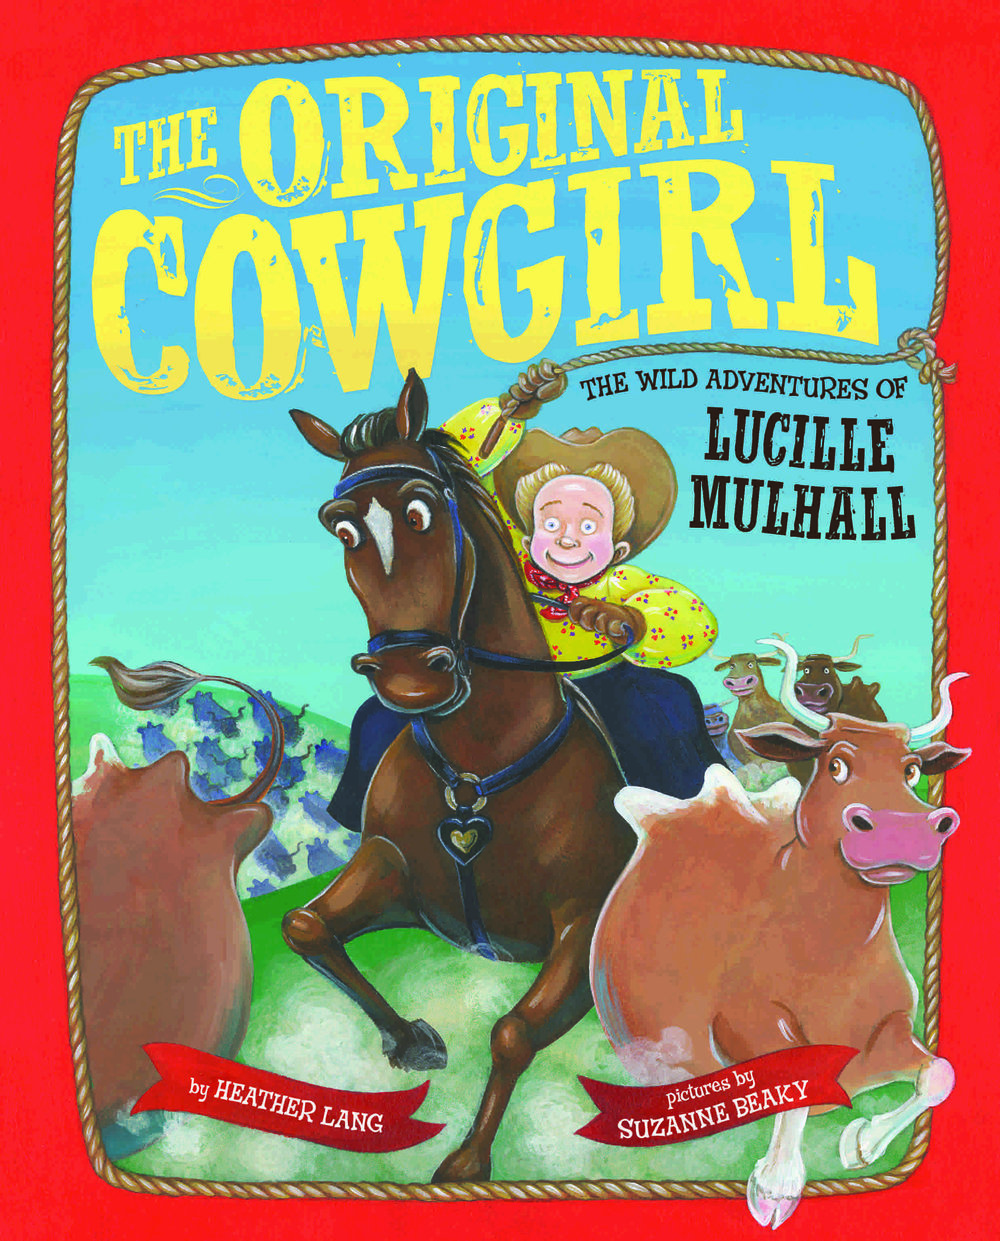 Original Cowgirl (Lang) cover.jpg